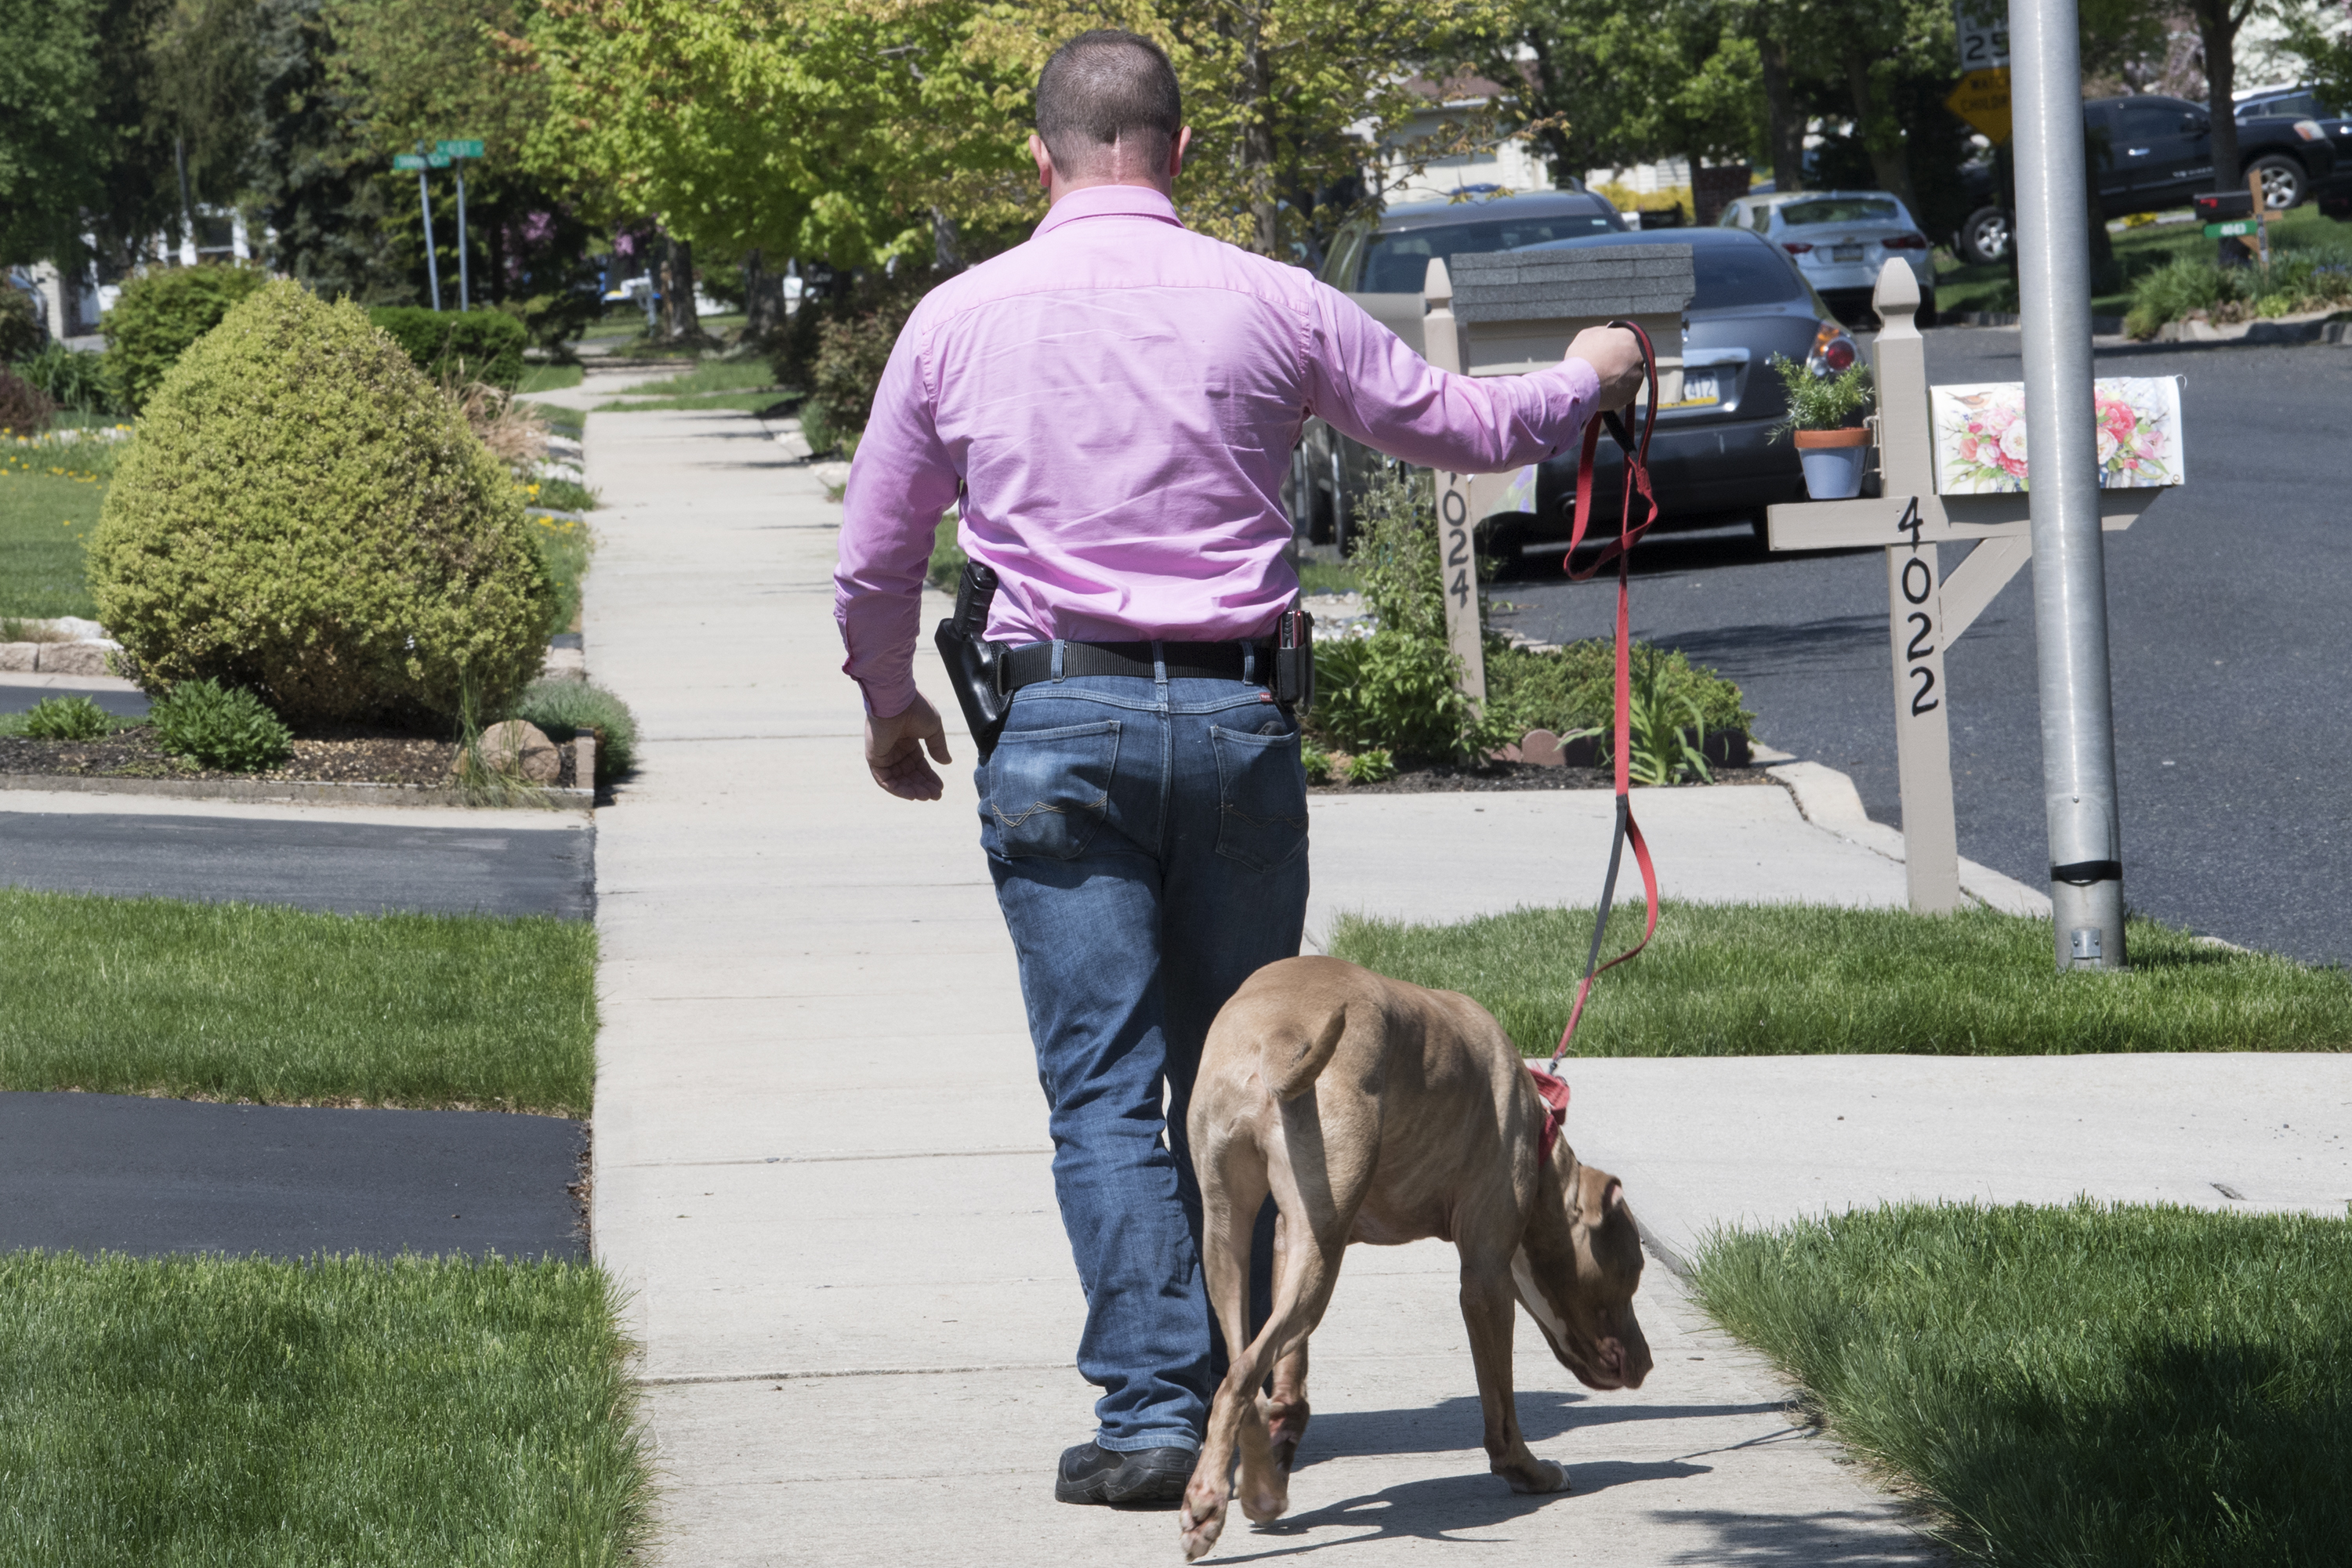 "Mark Fiorino is photographed with an open-carry handgun during a walk with his dog "" Barrett "" in Allentown, Pa. Wednesday, May 9, 2018."